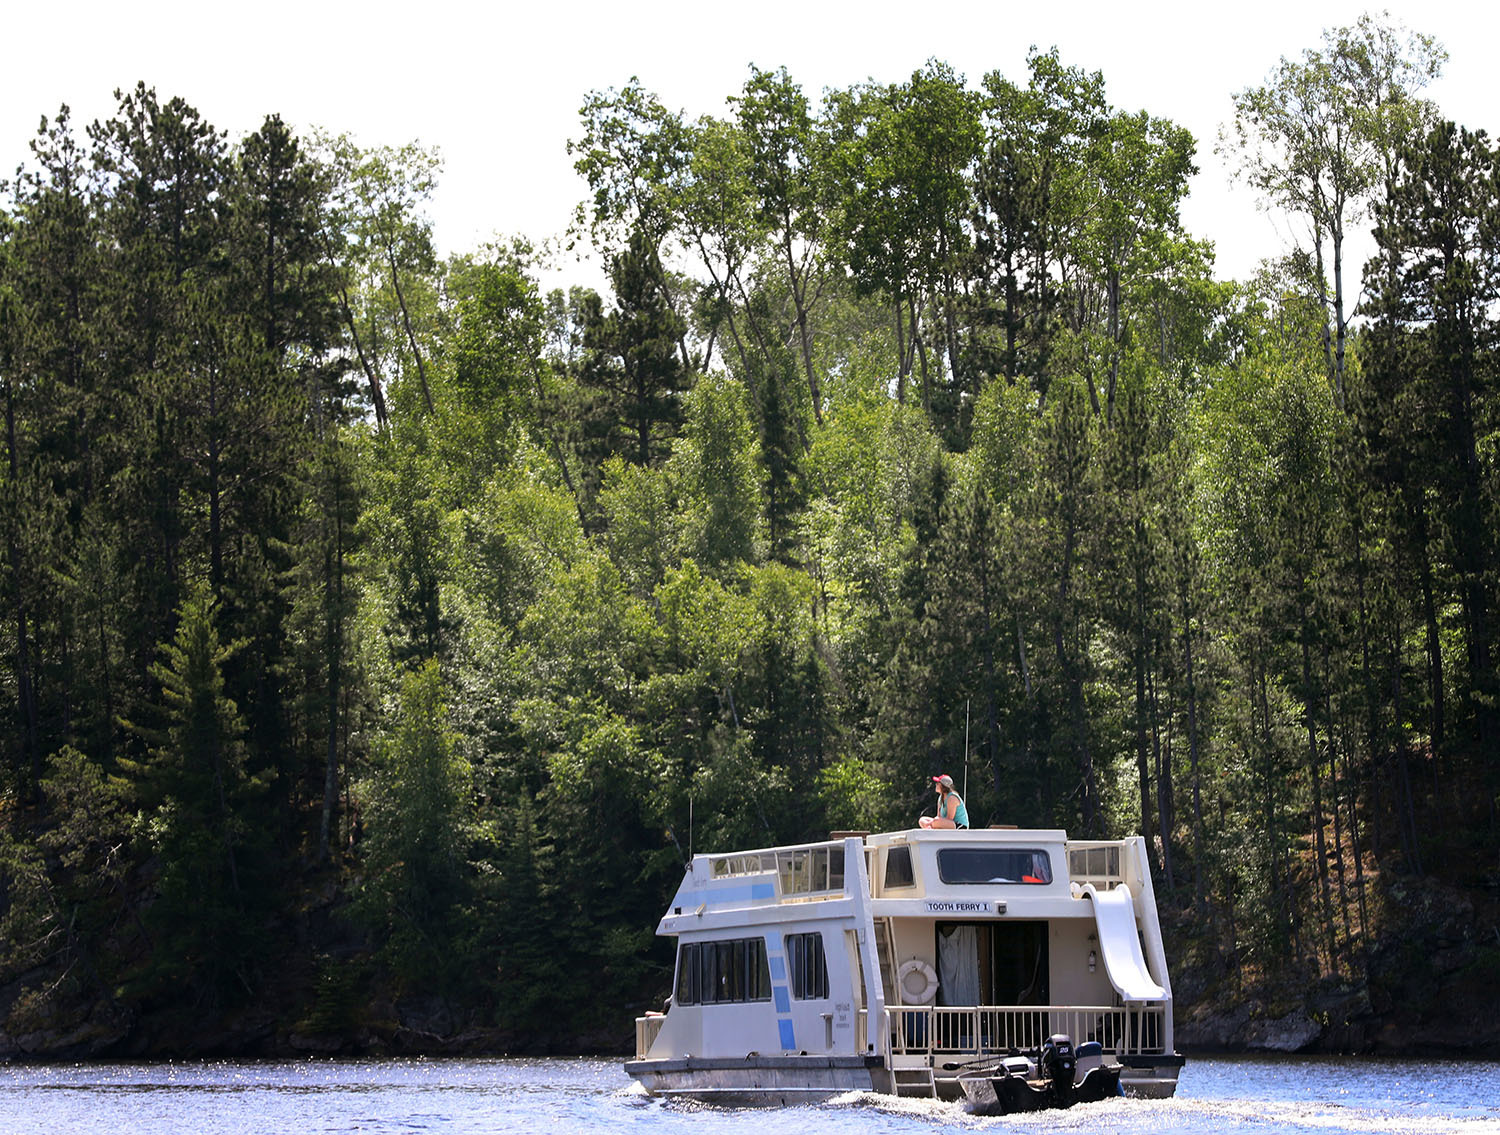 A houseboat plies the waters of Namakan Lake in Voyageurs National Park